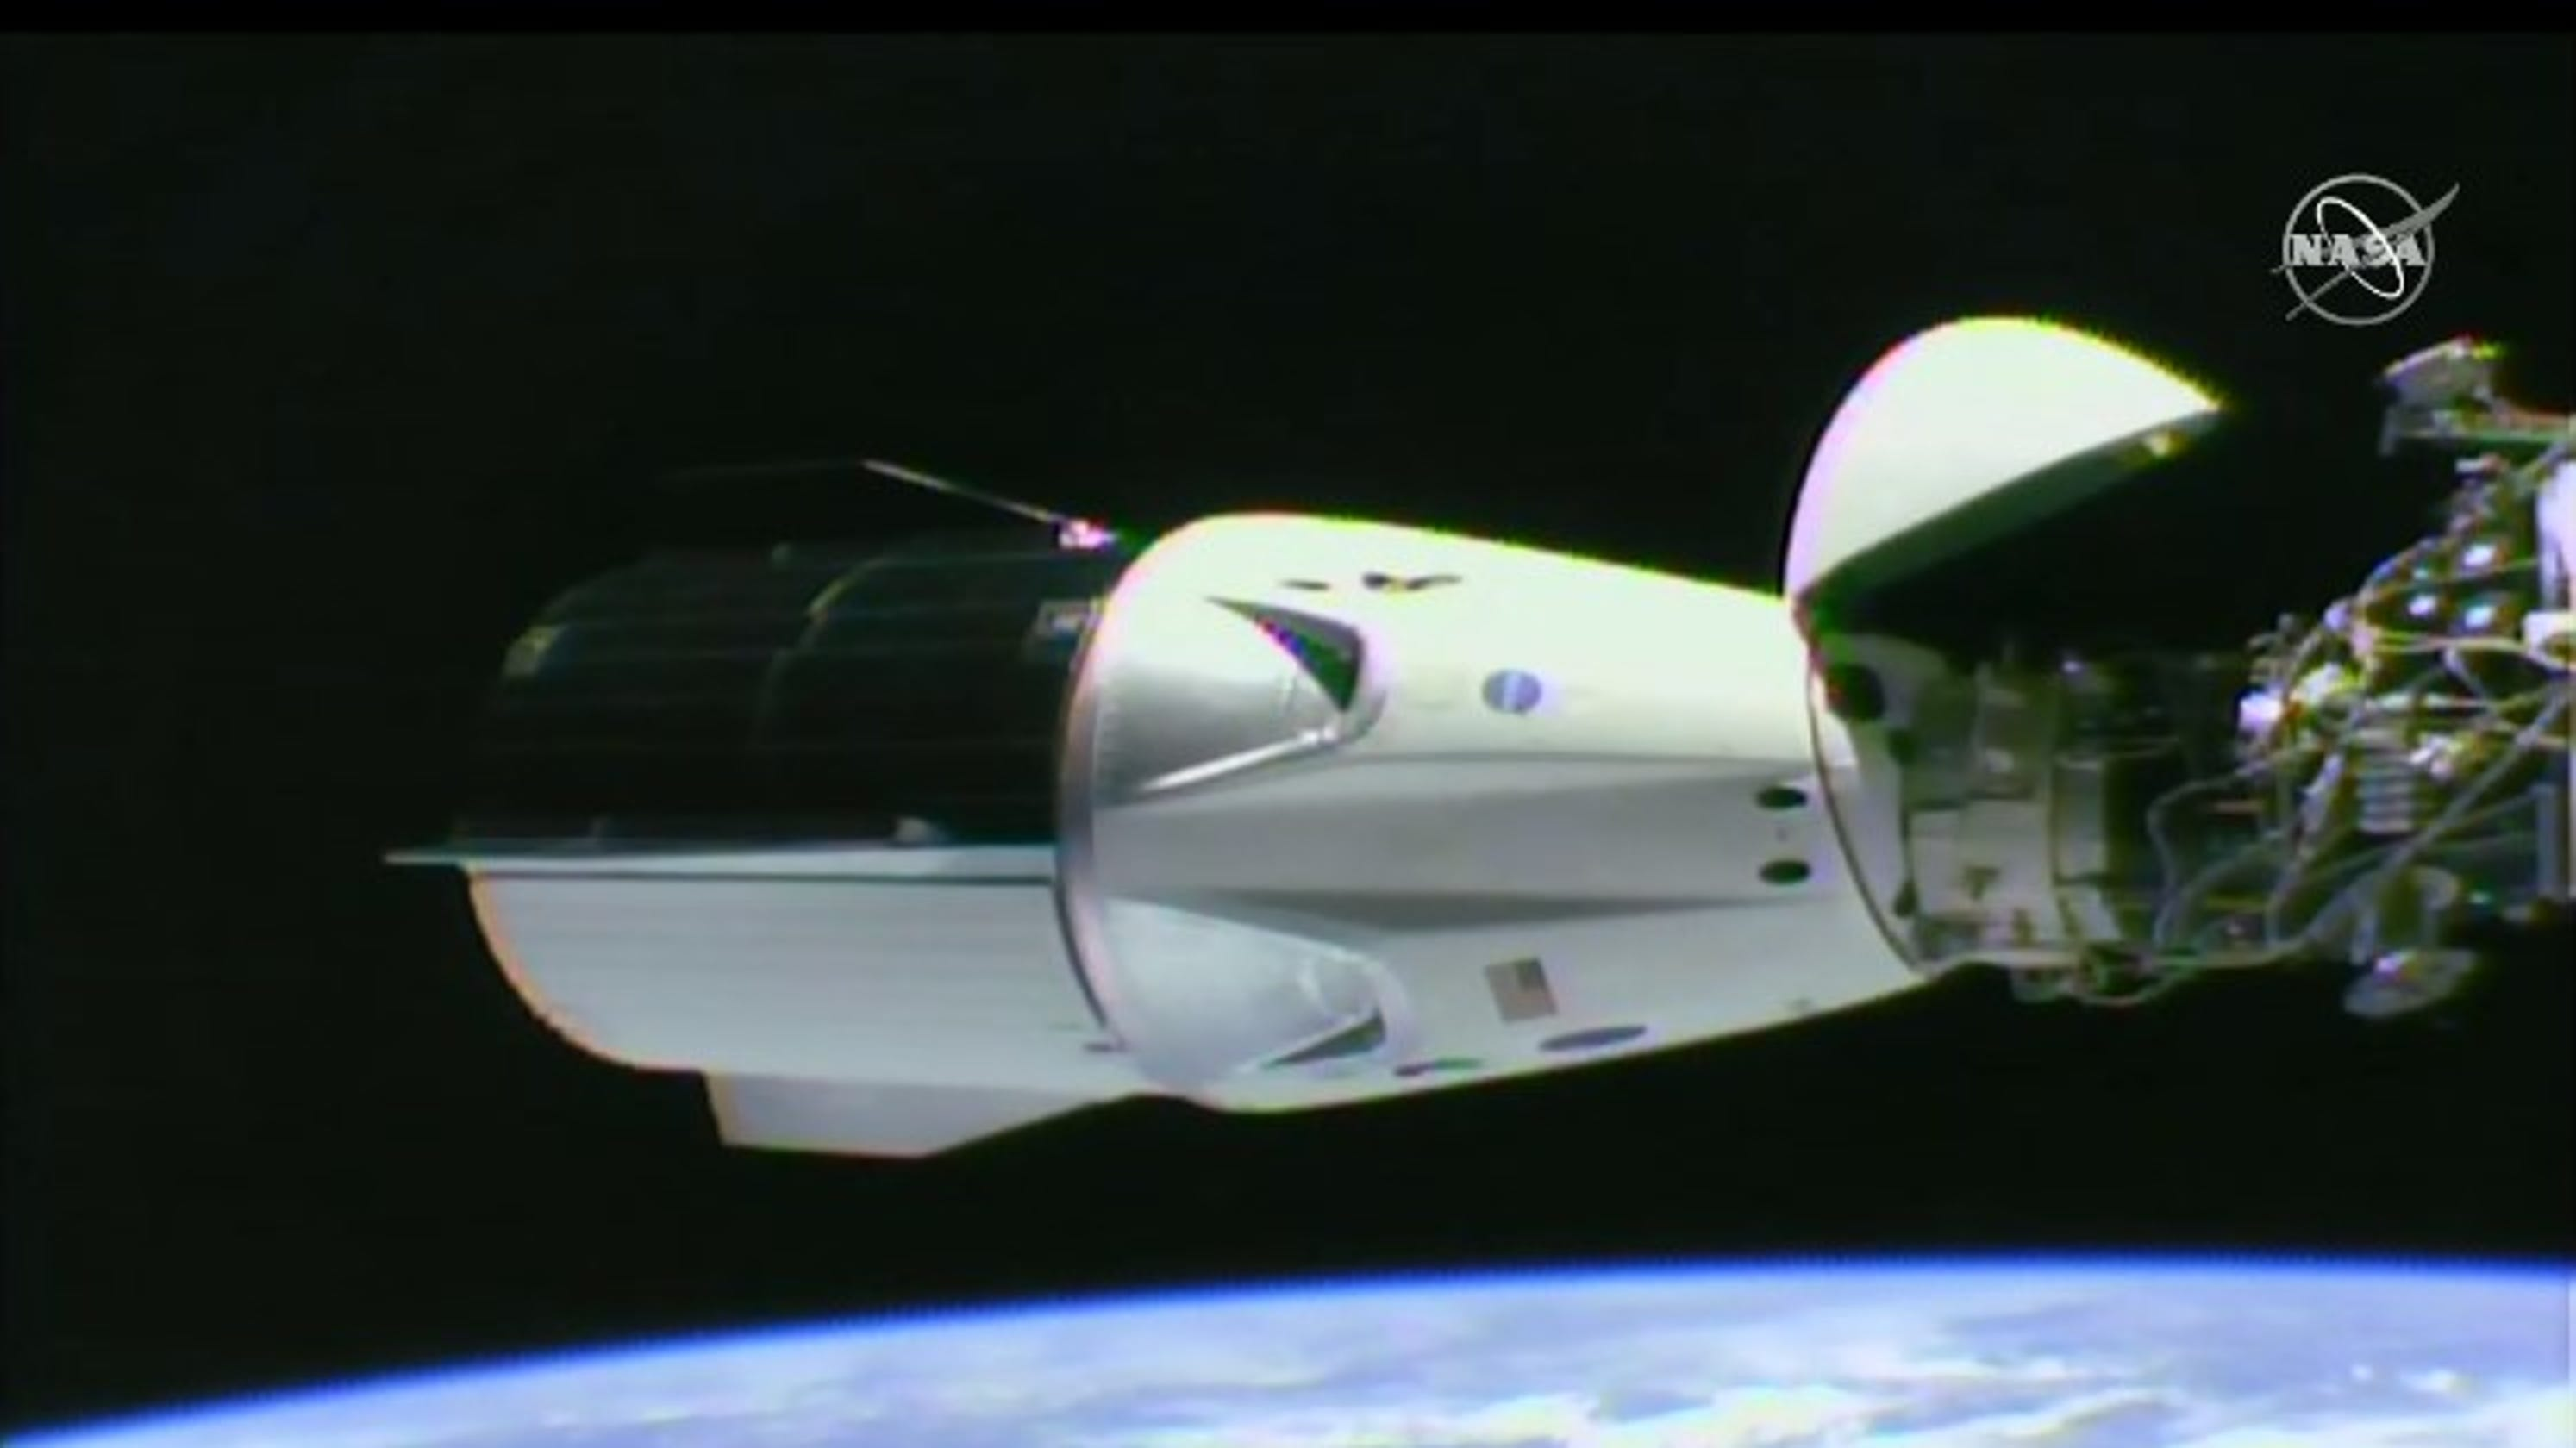 SpaceX Crew Dragon docks safely at ISS on Demo-1 test flight